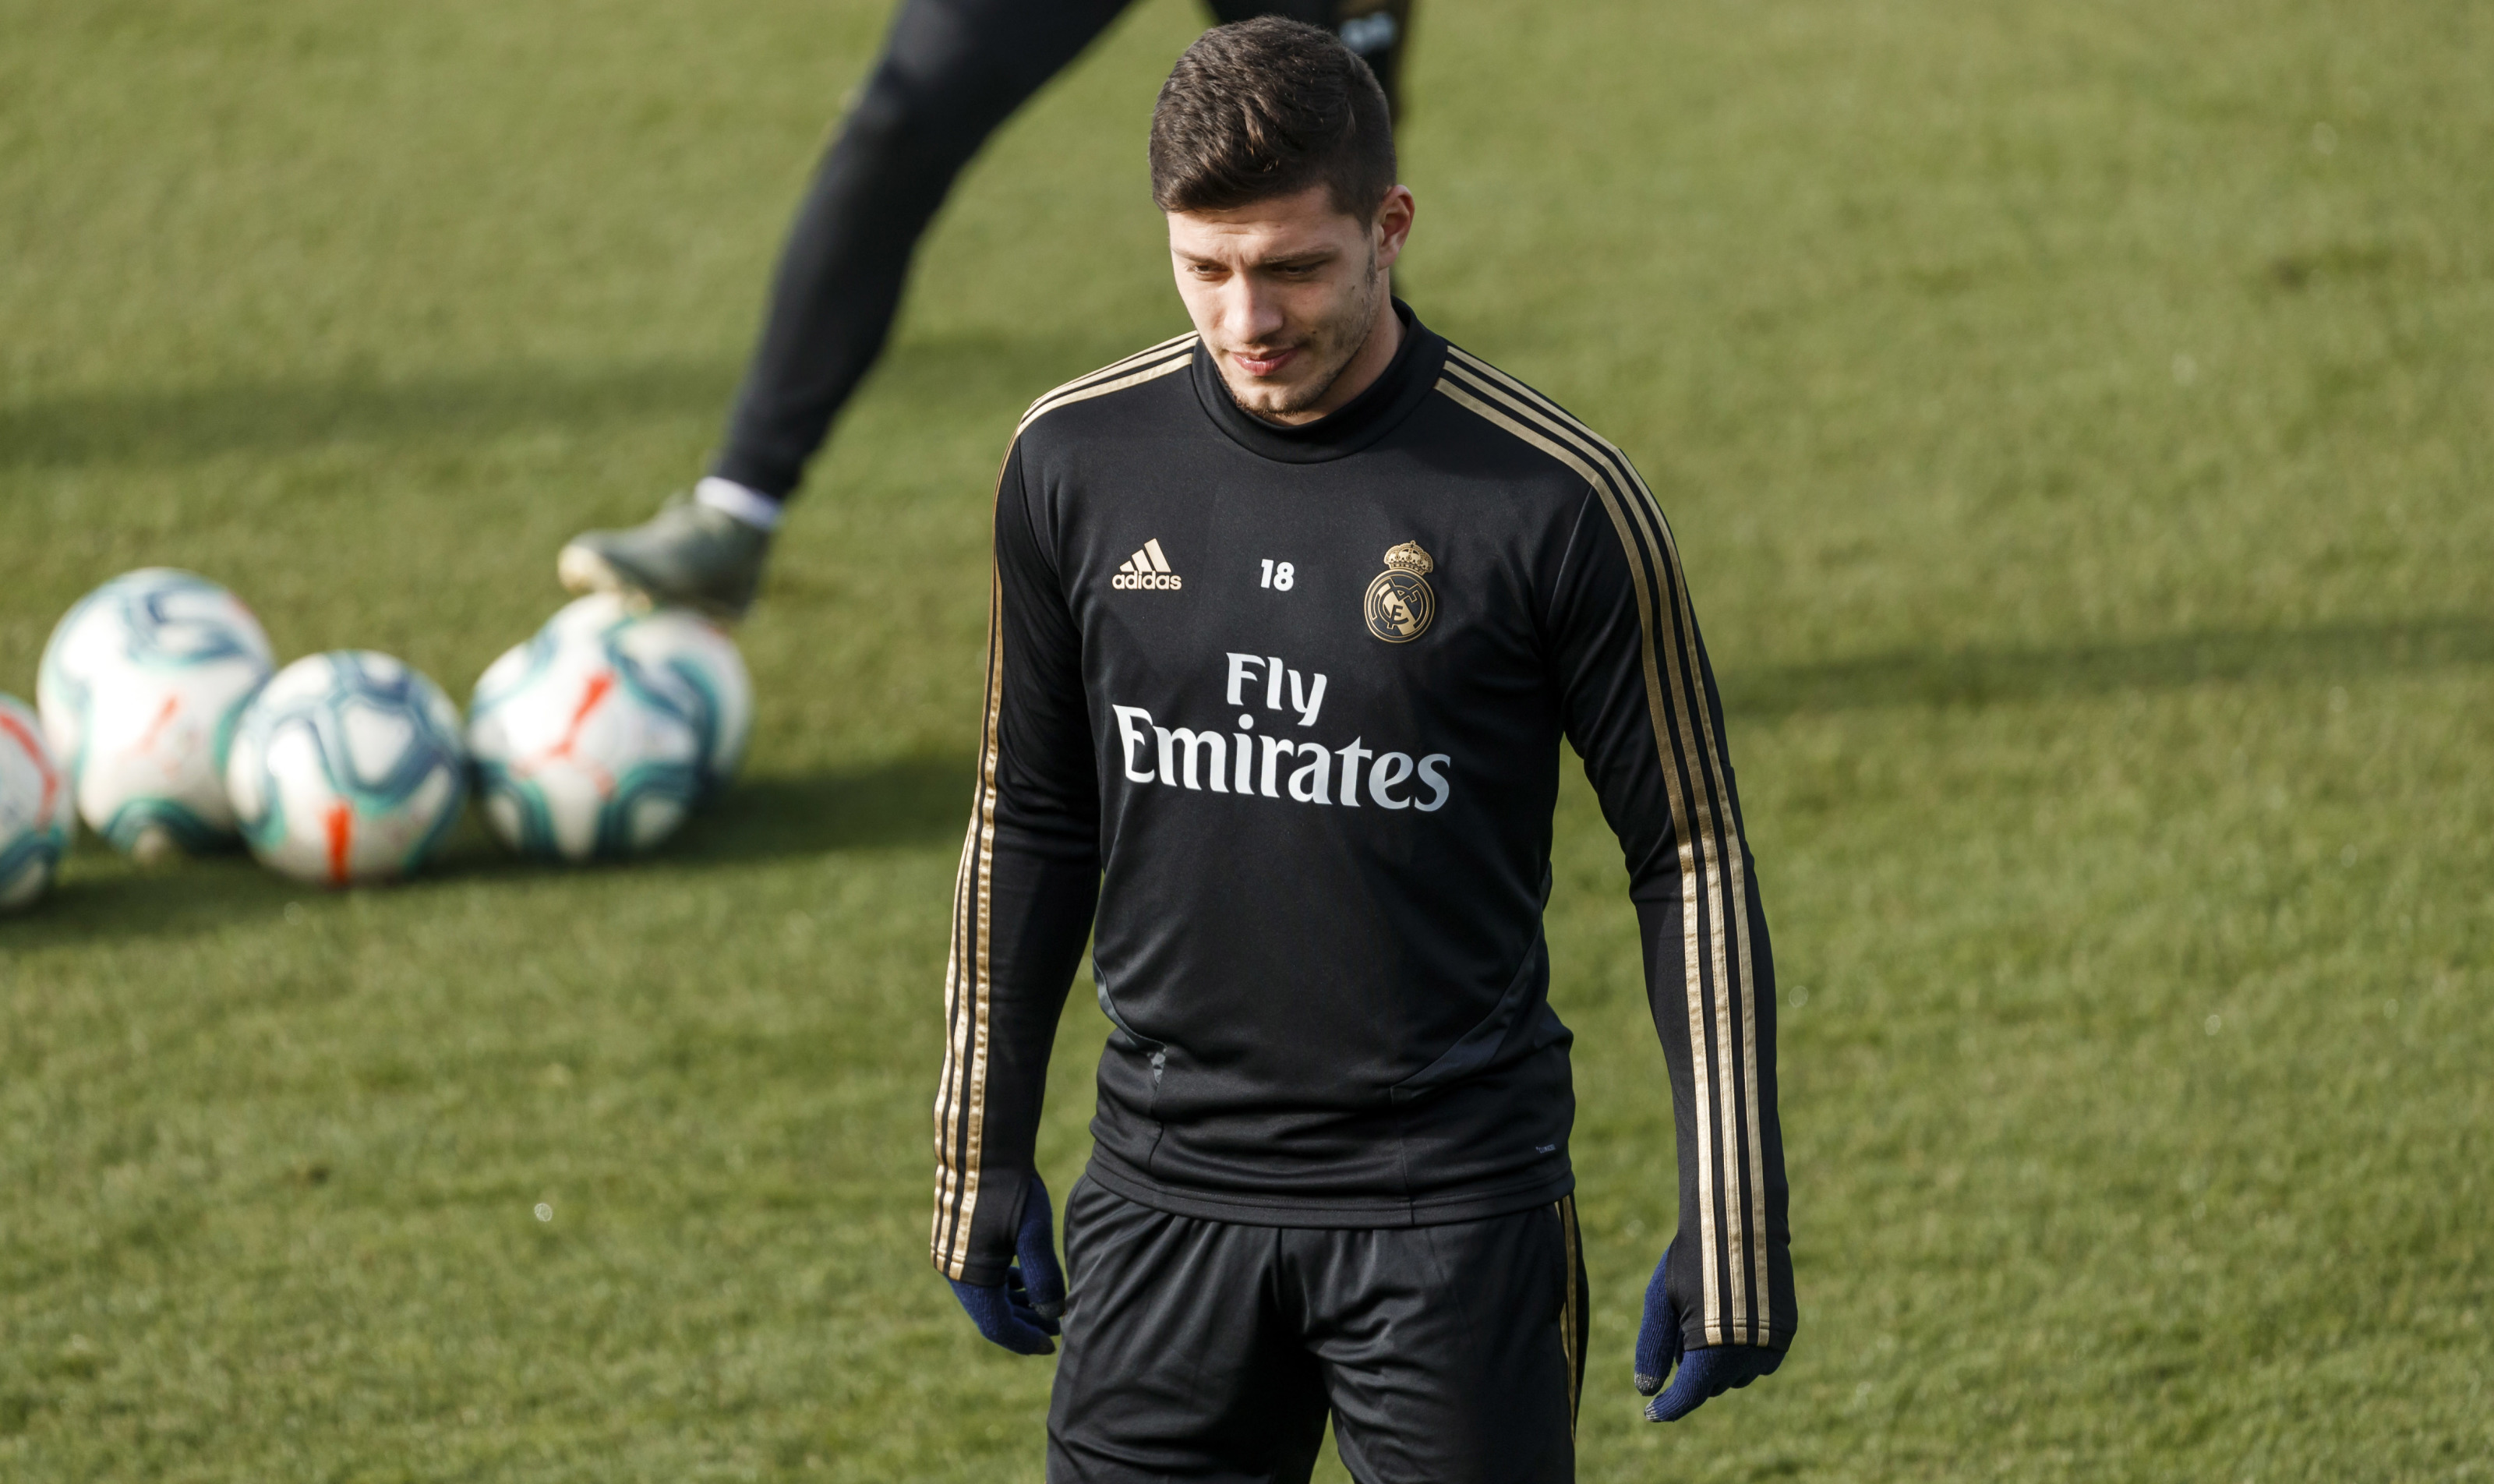 Real Madrid: Luka Jovic and Gareth Bale miss Wednesday's training with bizarre illness